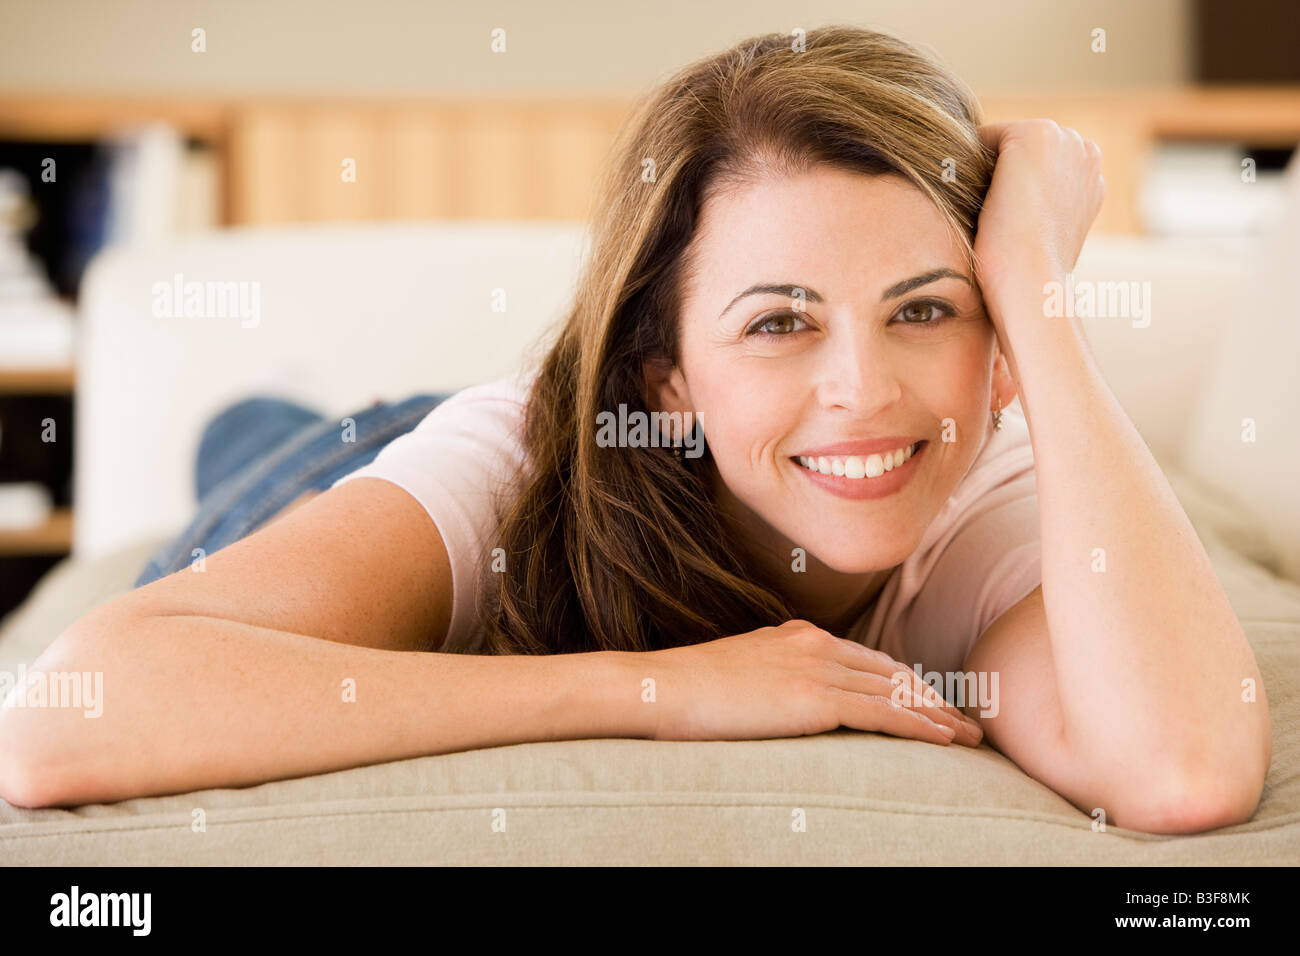 Woman lying in living room - Stock Image